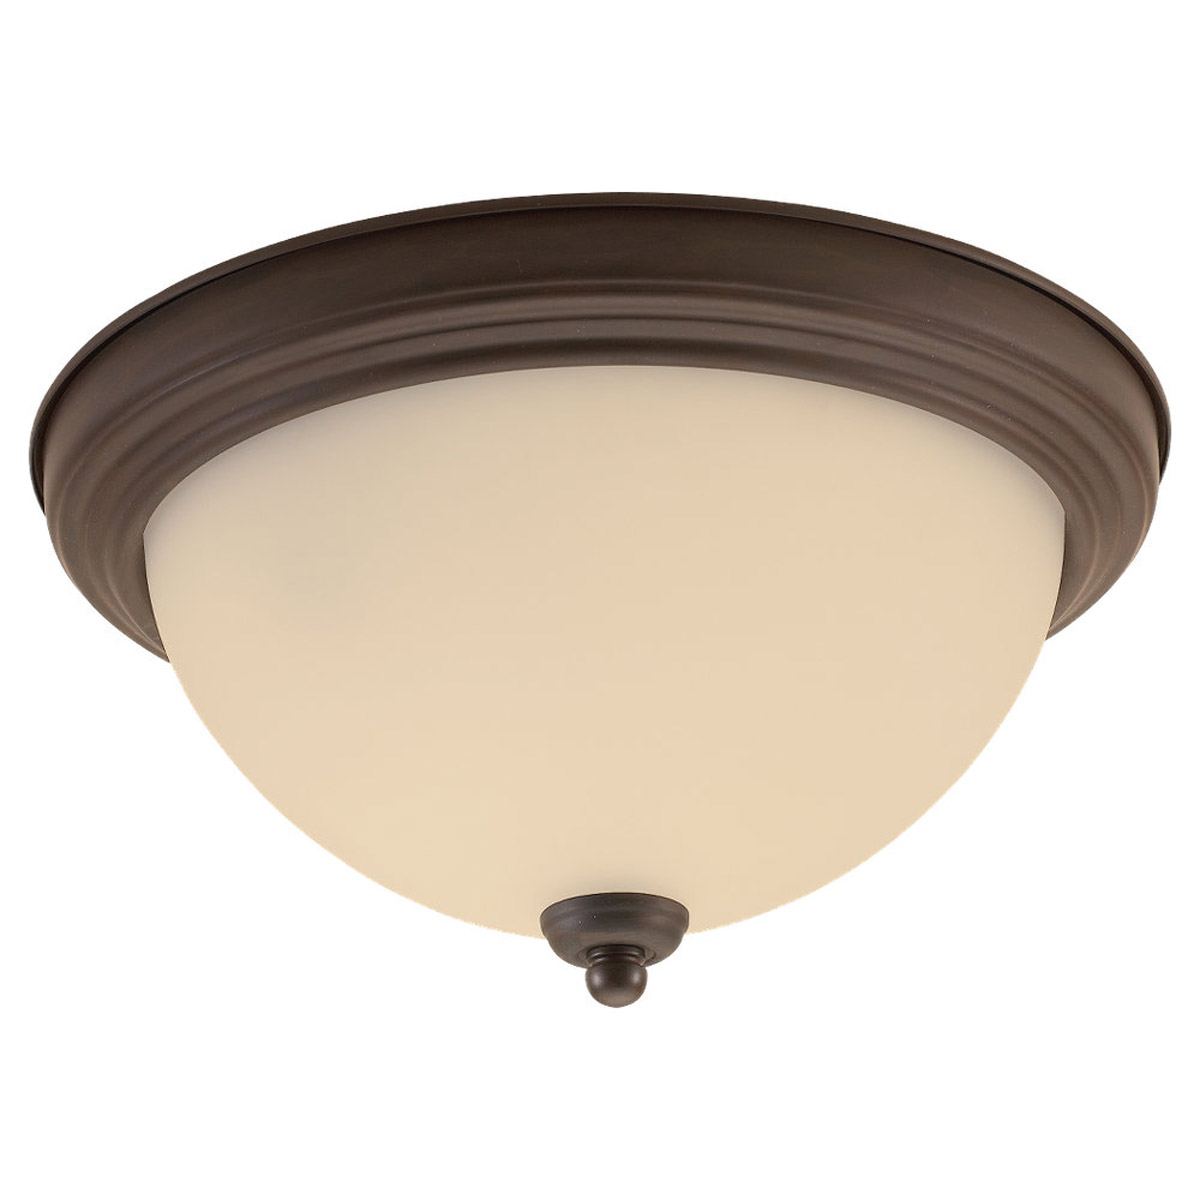 Sea Gull Lighting Montclaire 3 Light Flush Mount in Olde Iron 77065-72